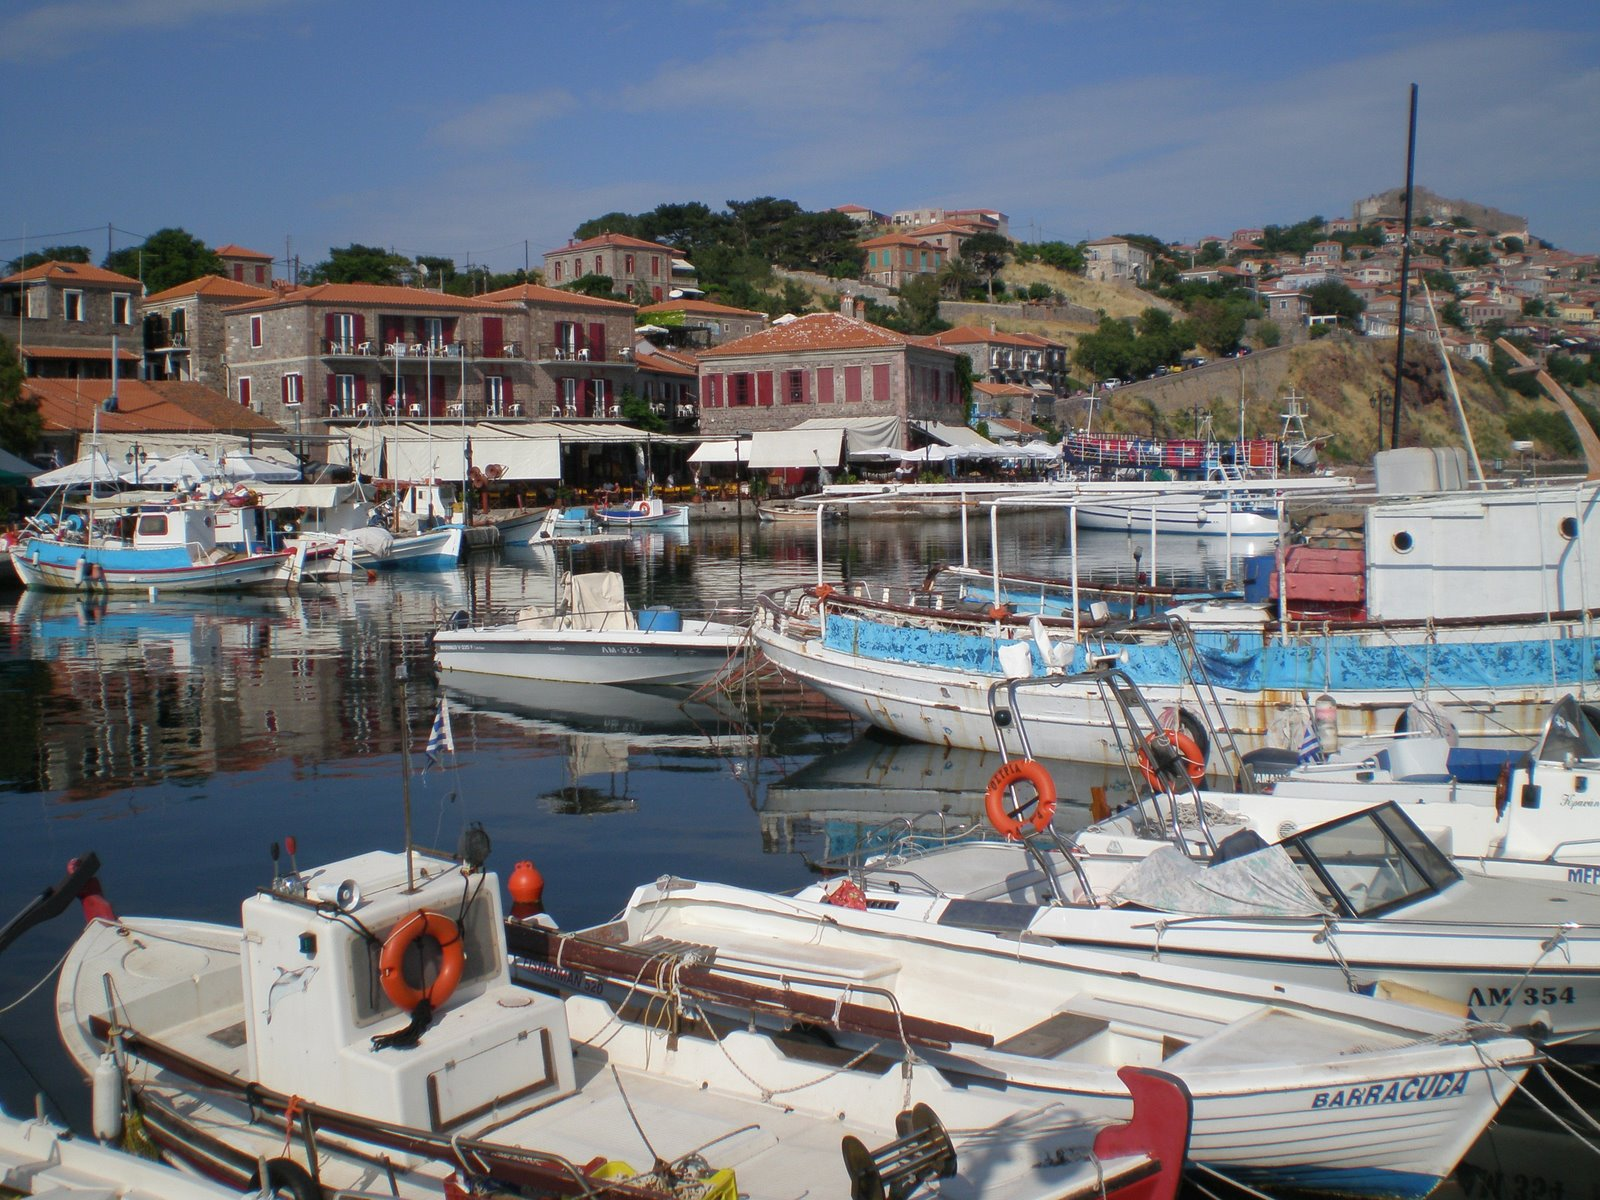 ... of where I was staying while reading these novels; Molyvos, in Lesbos.